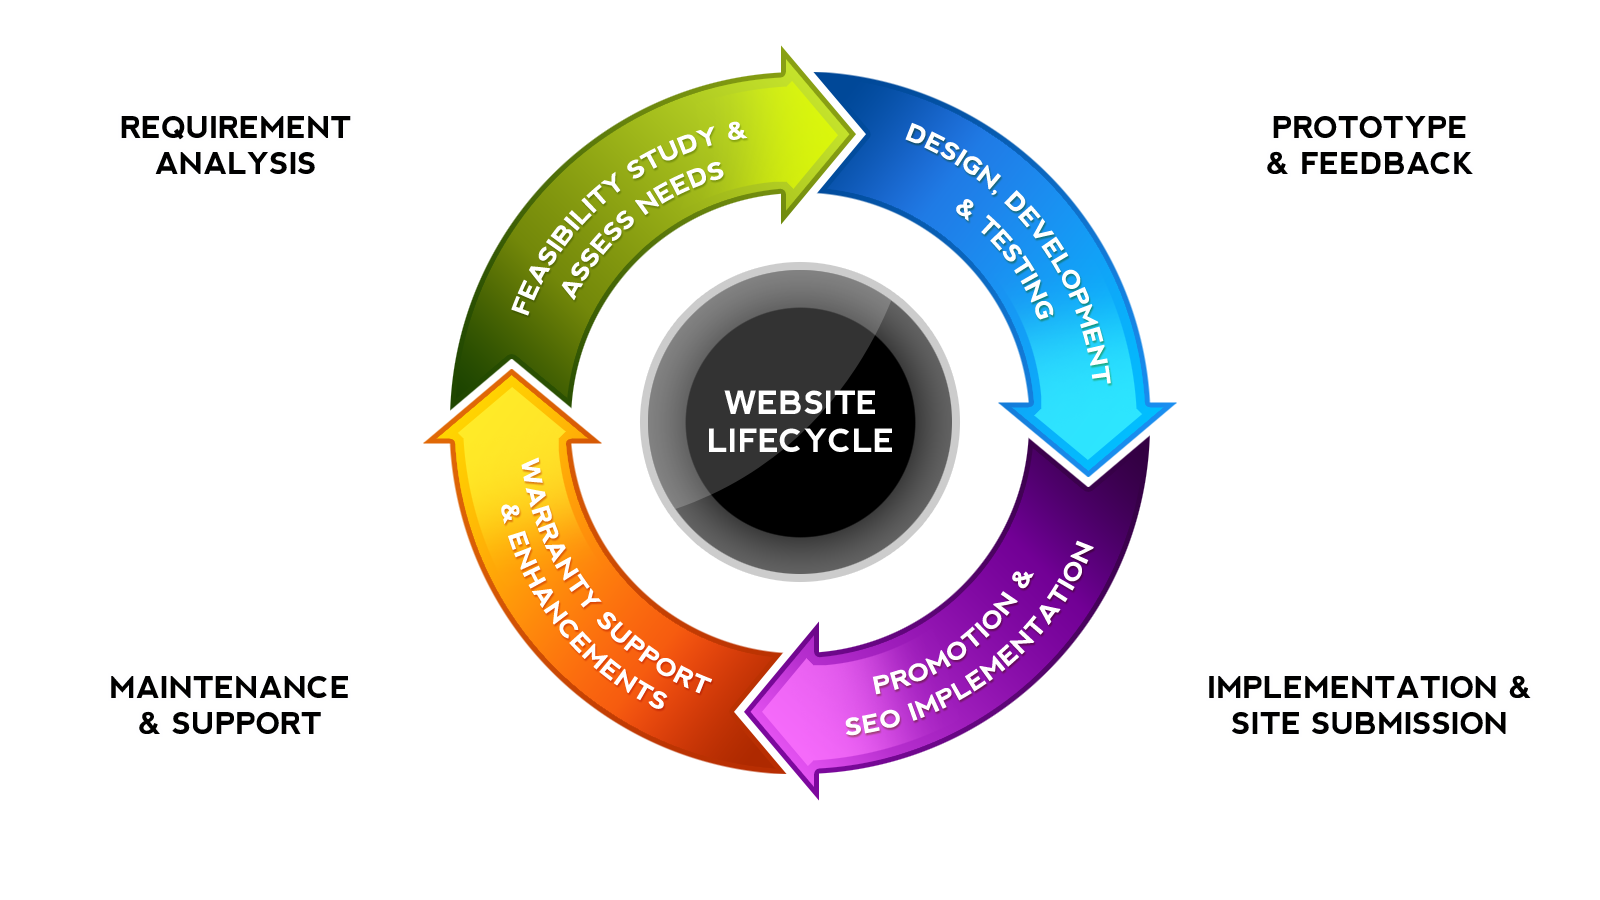 Web Design Life Cycle